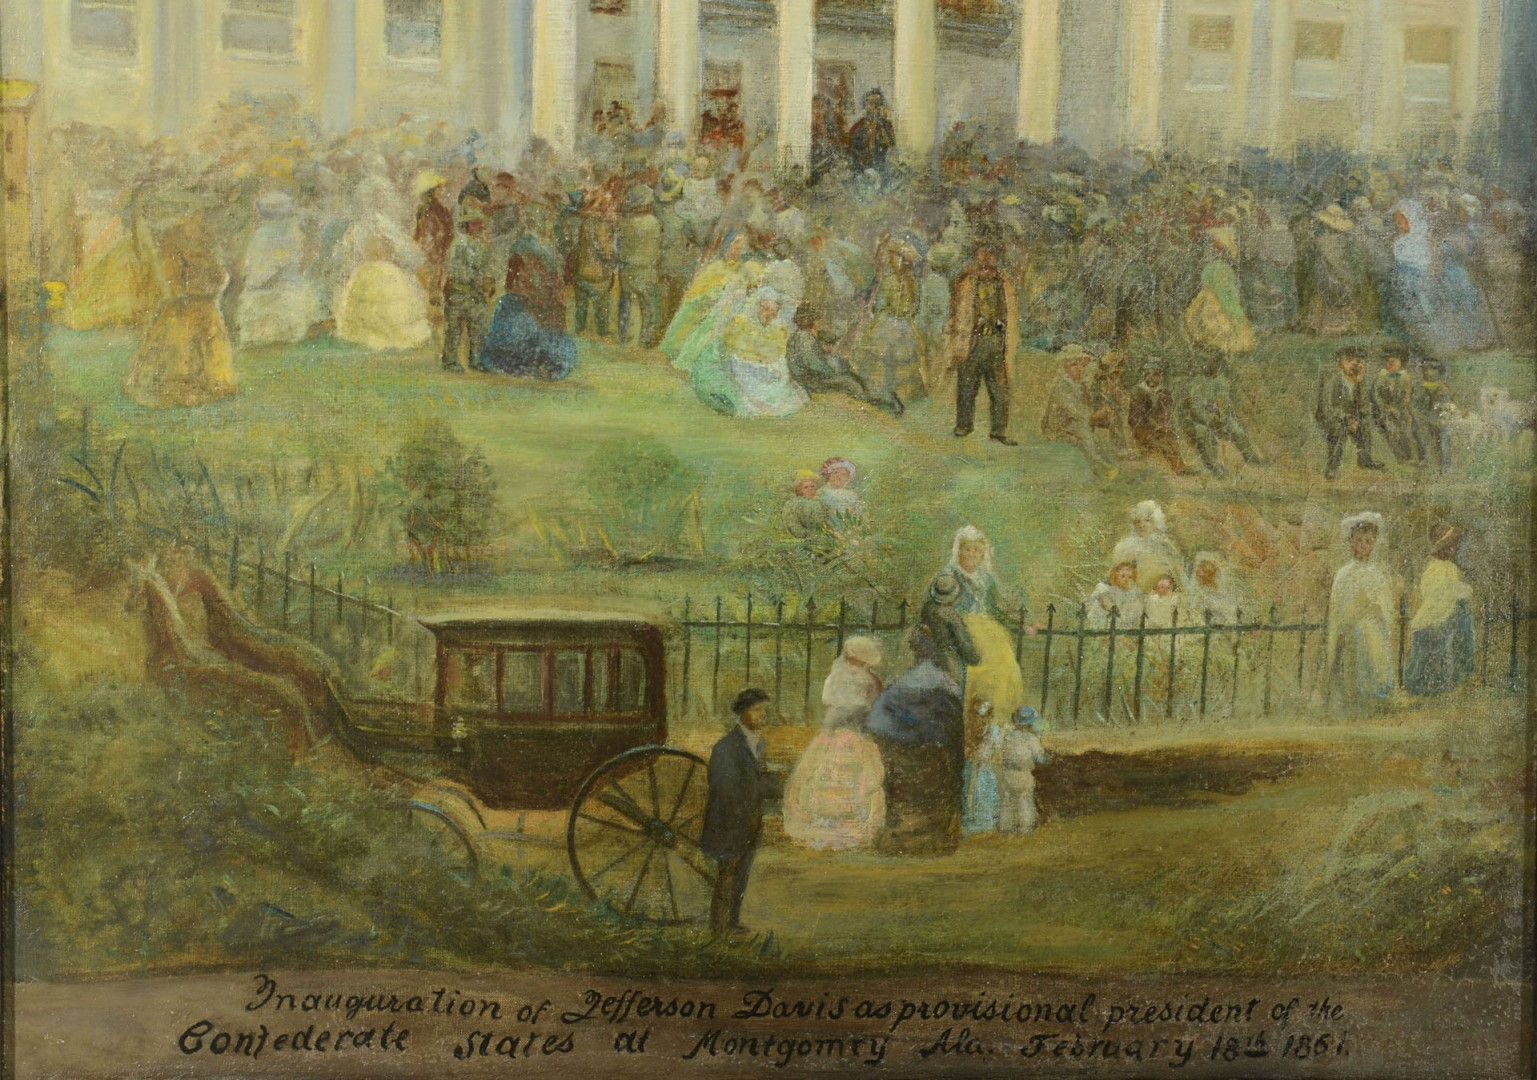 Lg. Painting of Jefferson Davis inauguration